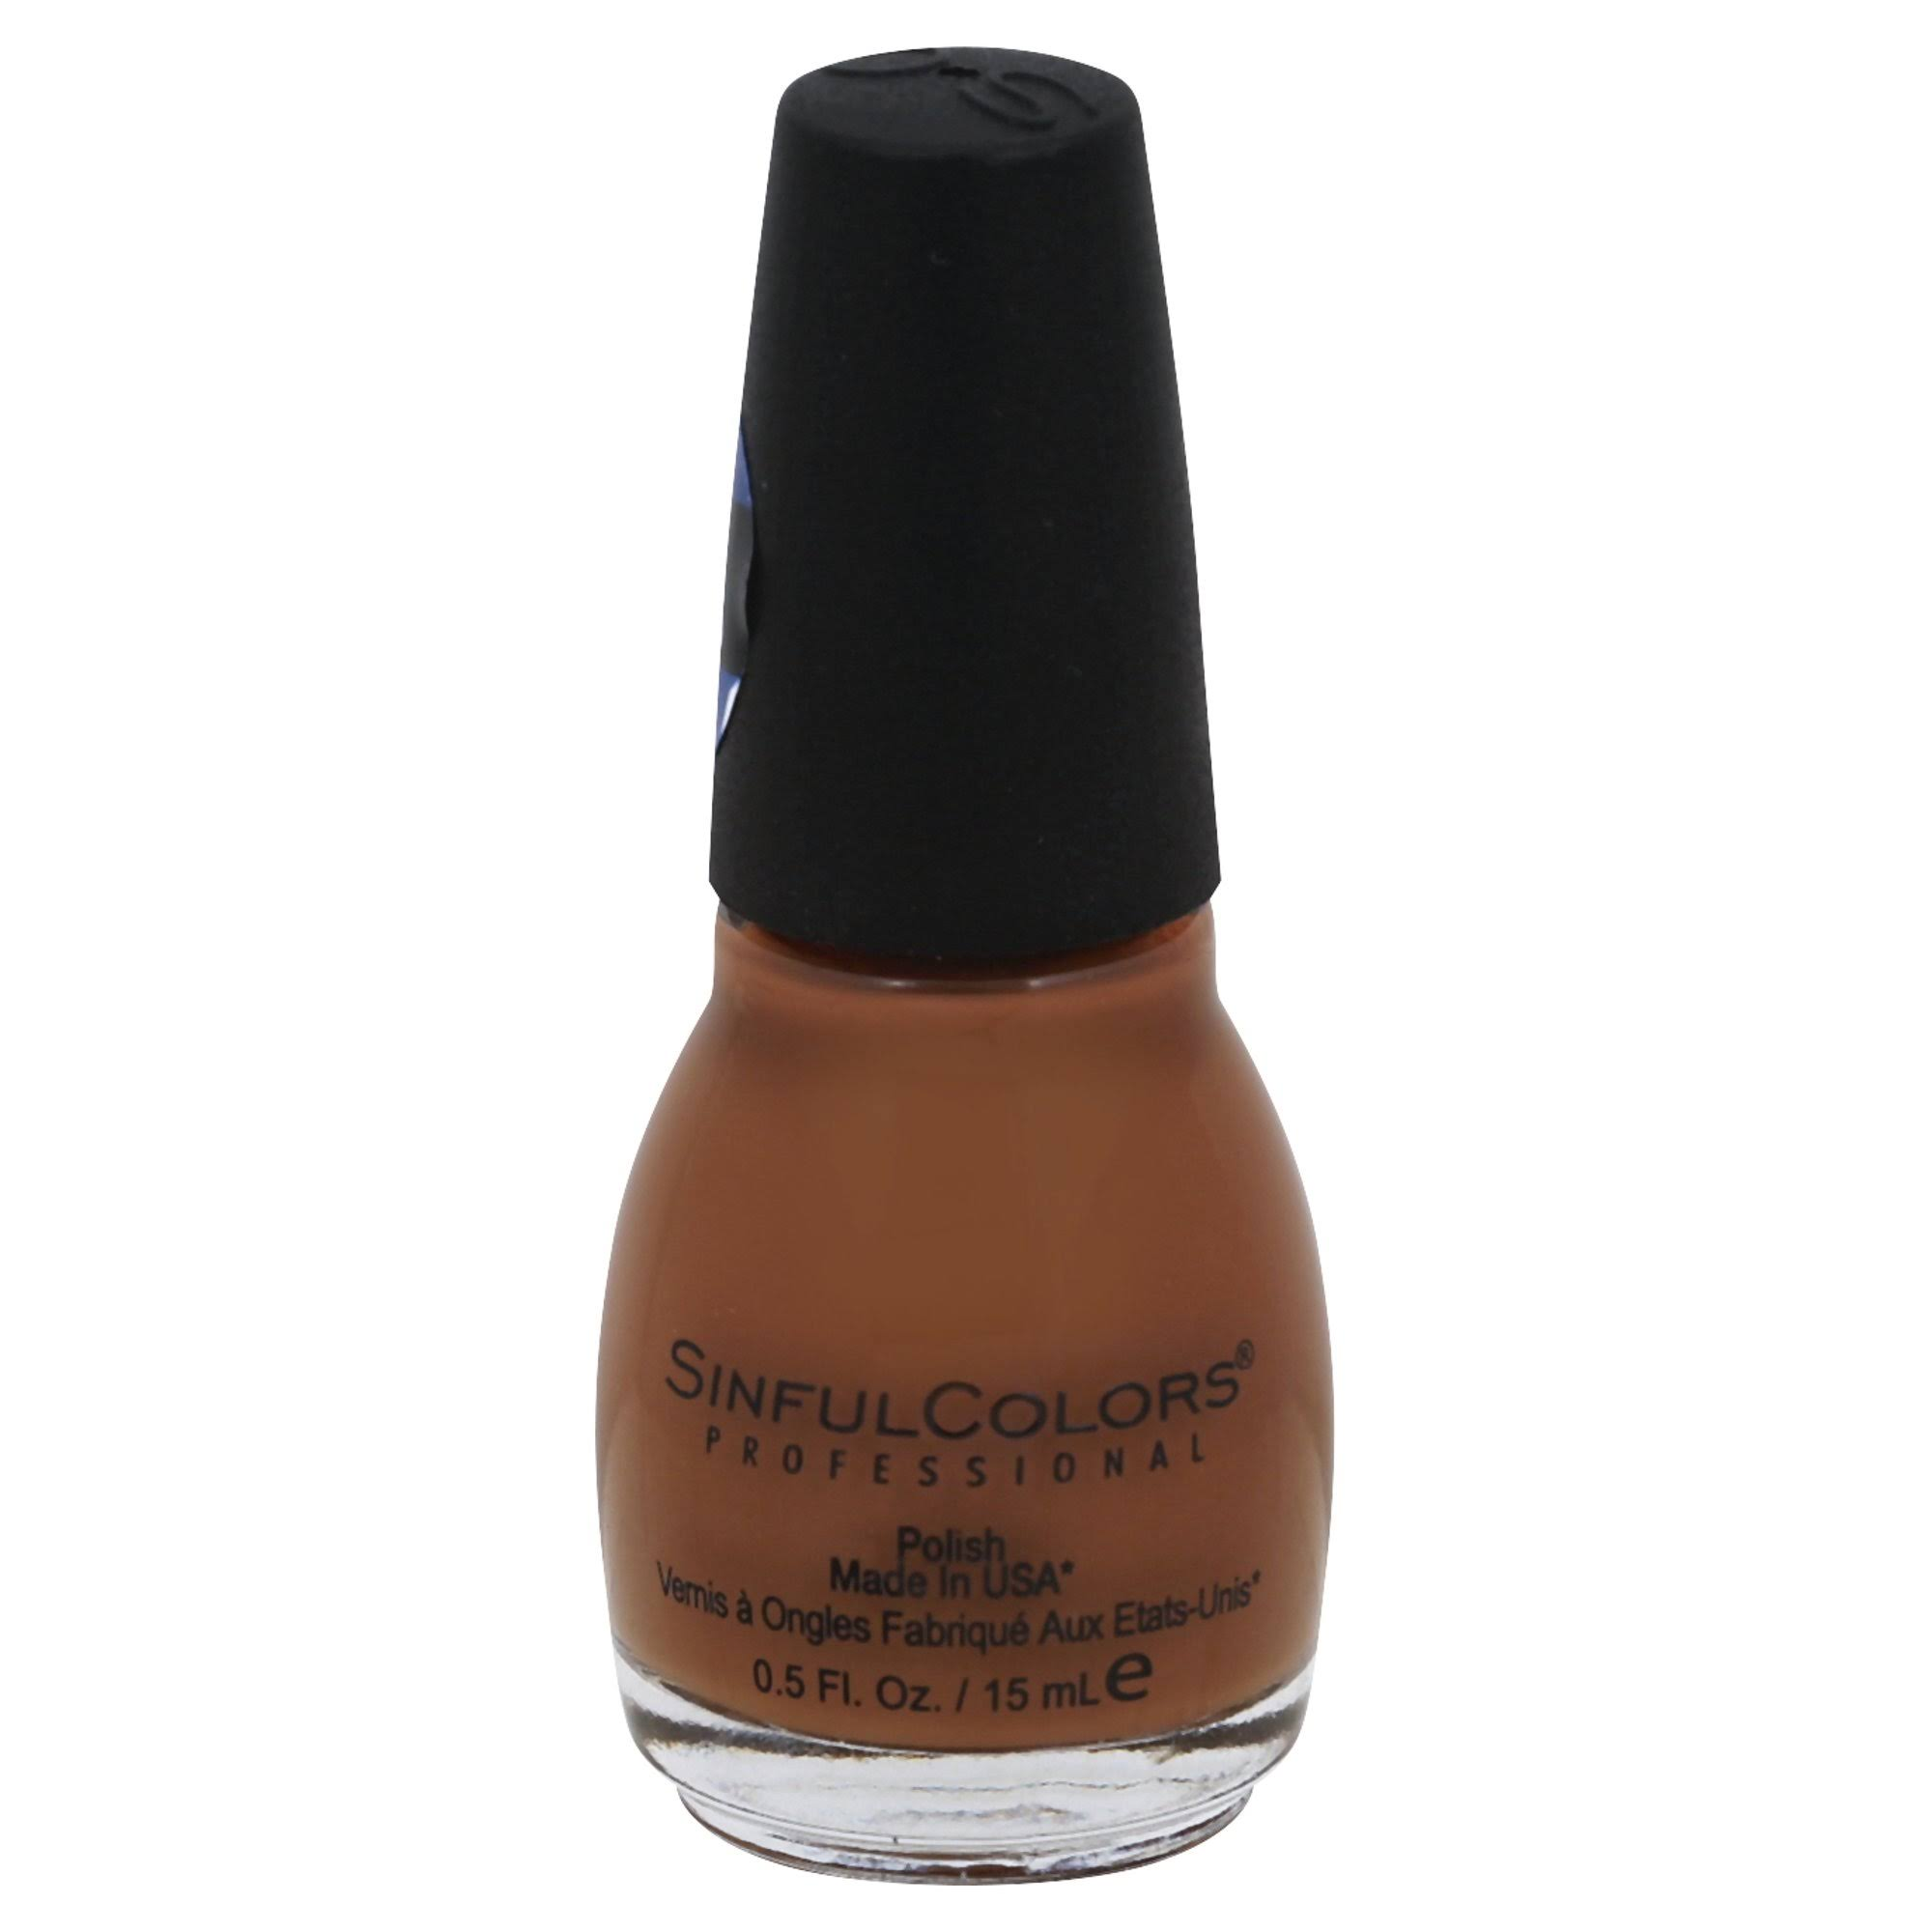 SinfulColors Professional Polish, Hot Toffee 2546 - 0.5 fl oz